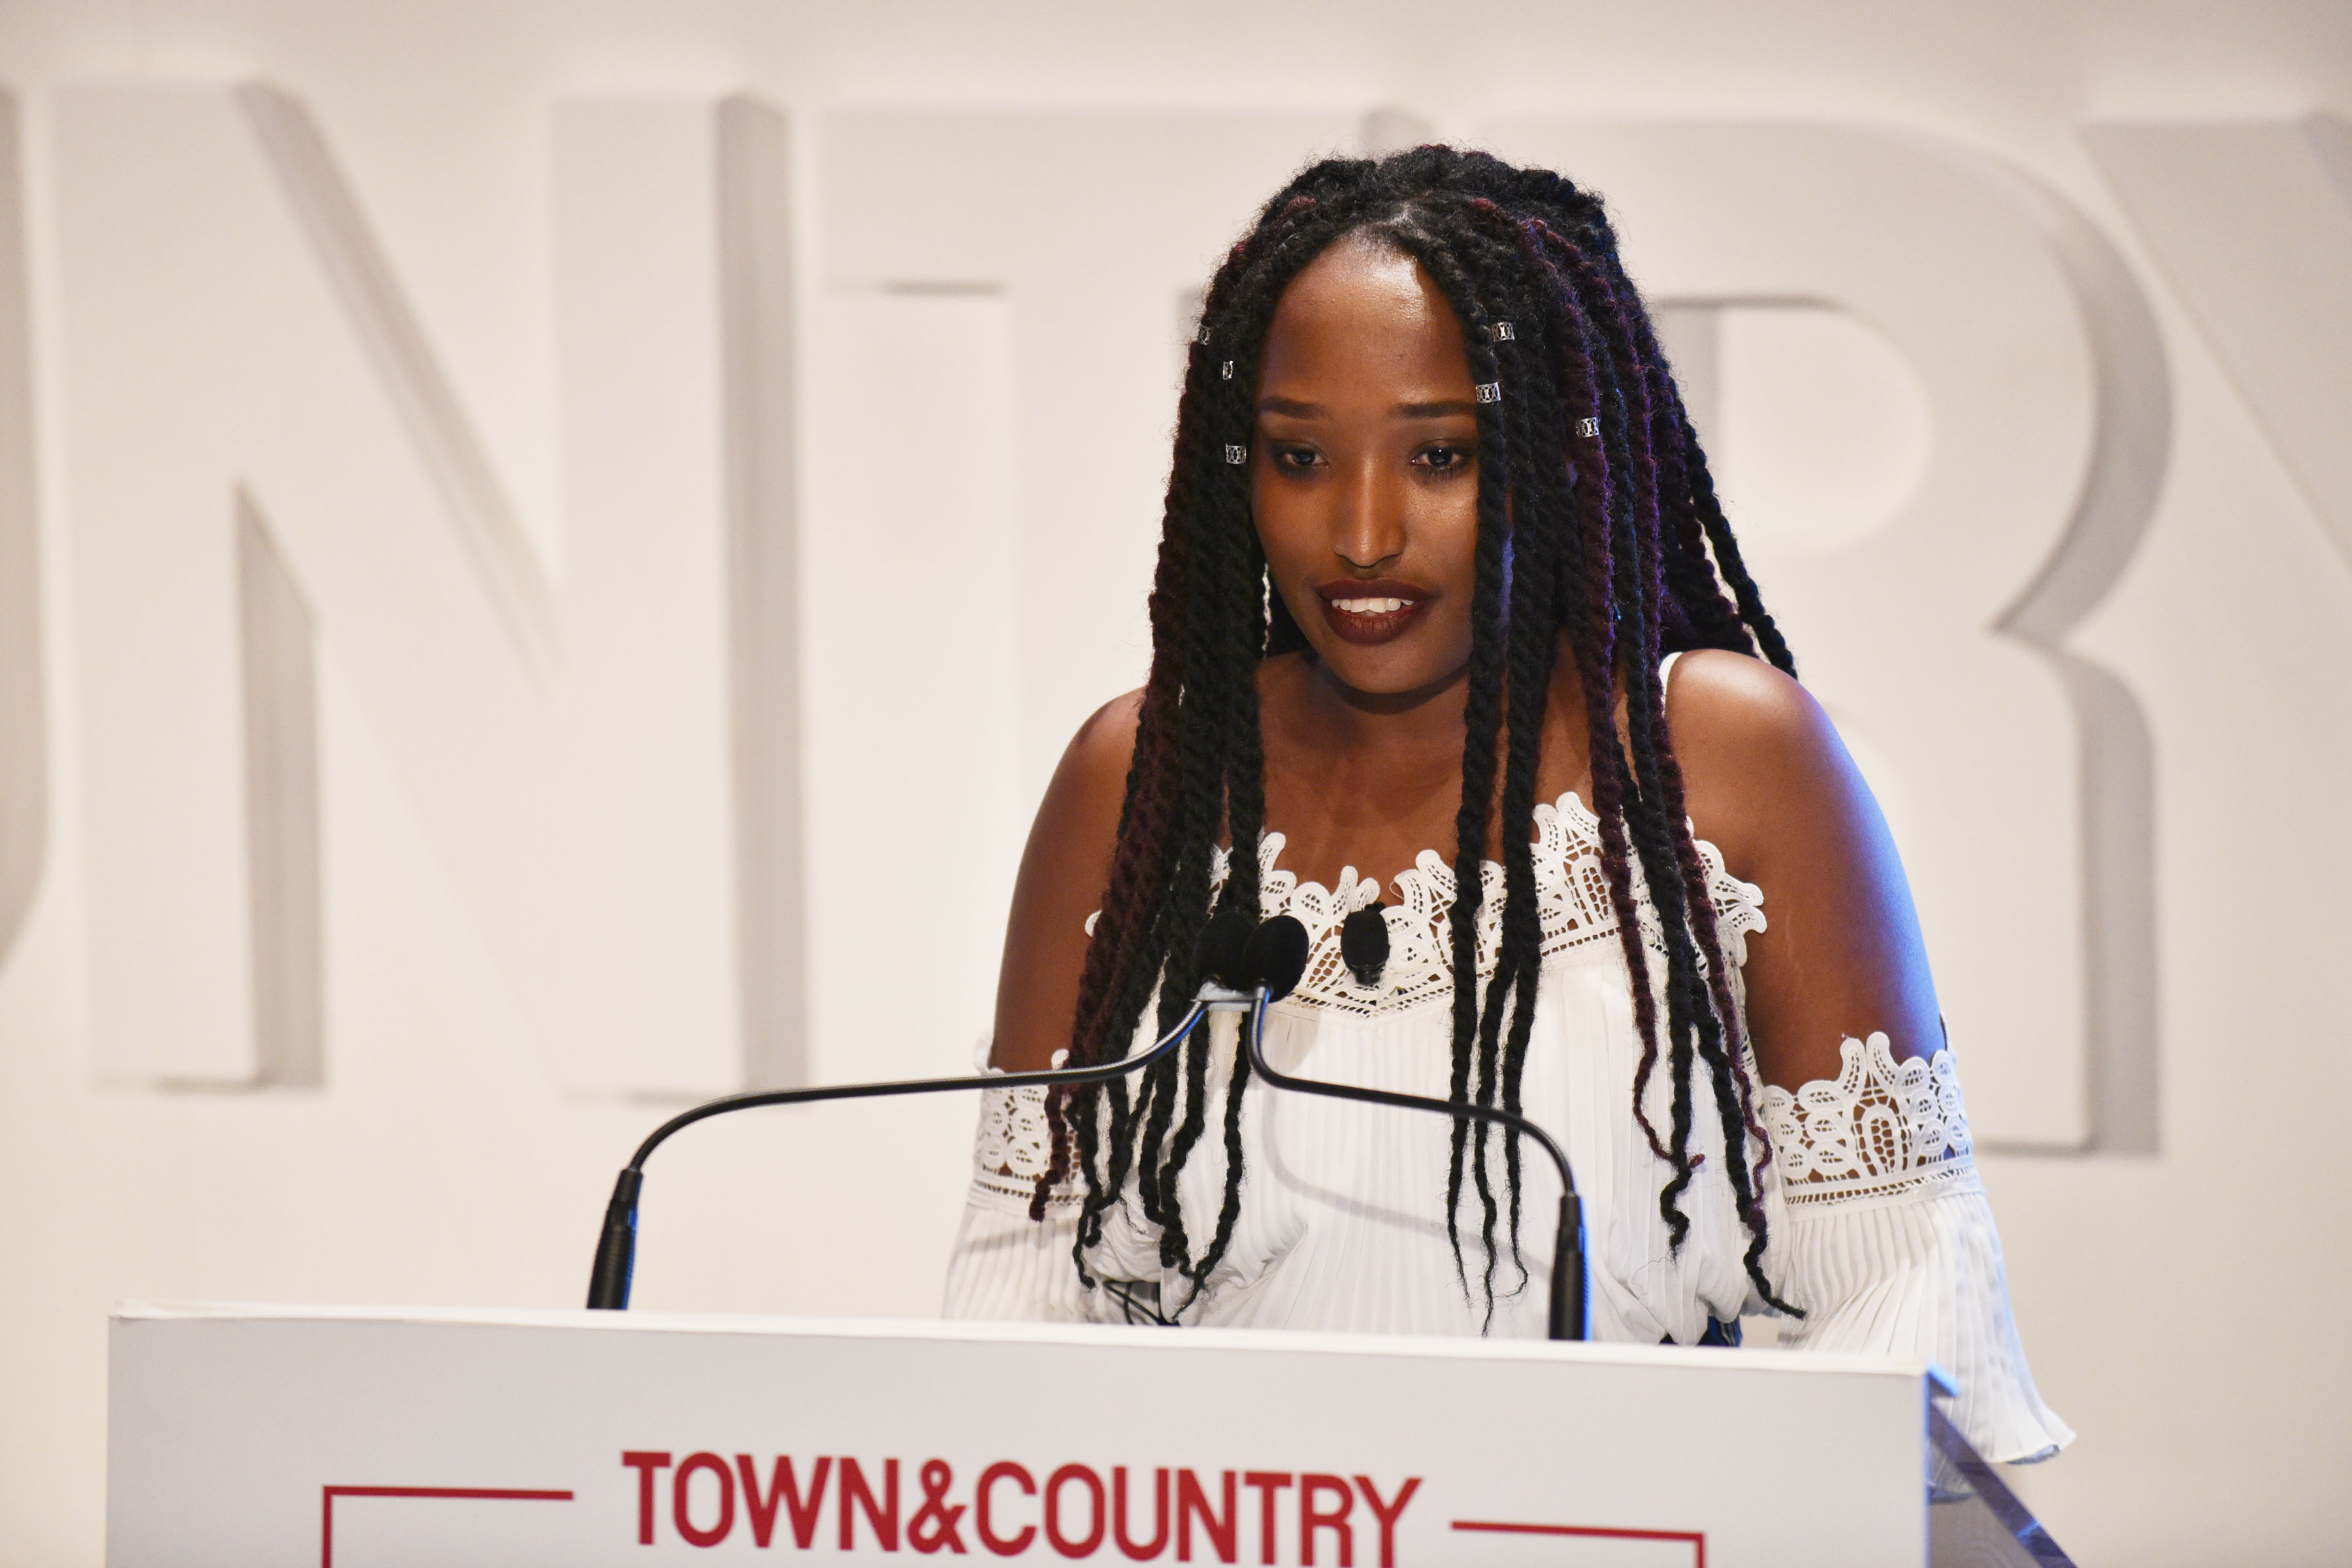 NEW YORK, NY - MAY 09:  Co-Founder of the Jimbere Fund Sandra Uwiringiyimana speaks onstage during the 4th Annual Town & Country Philanthropy Summit at Hearst Tower on May 9, 2017 in New York City.  (Photo by Bryan Bedder/Getty Images for Town & Country)